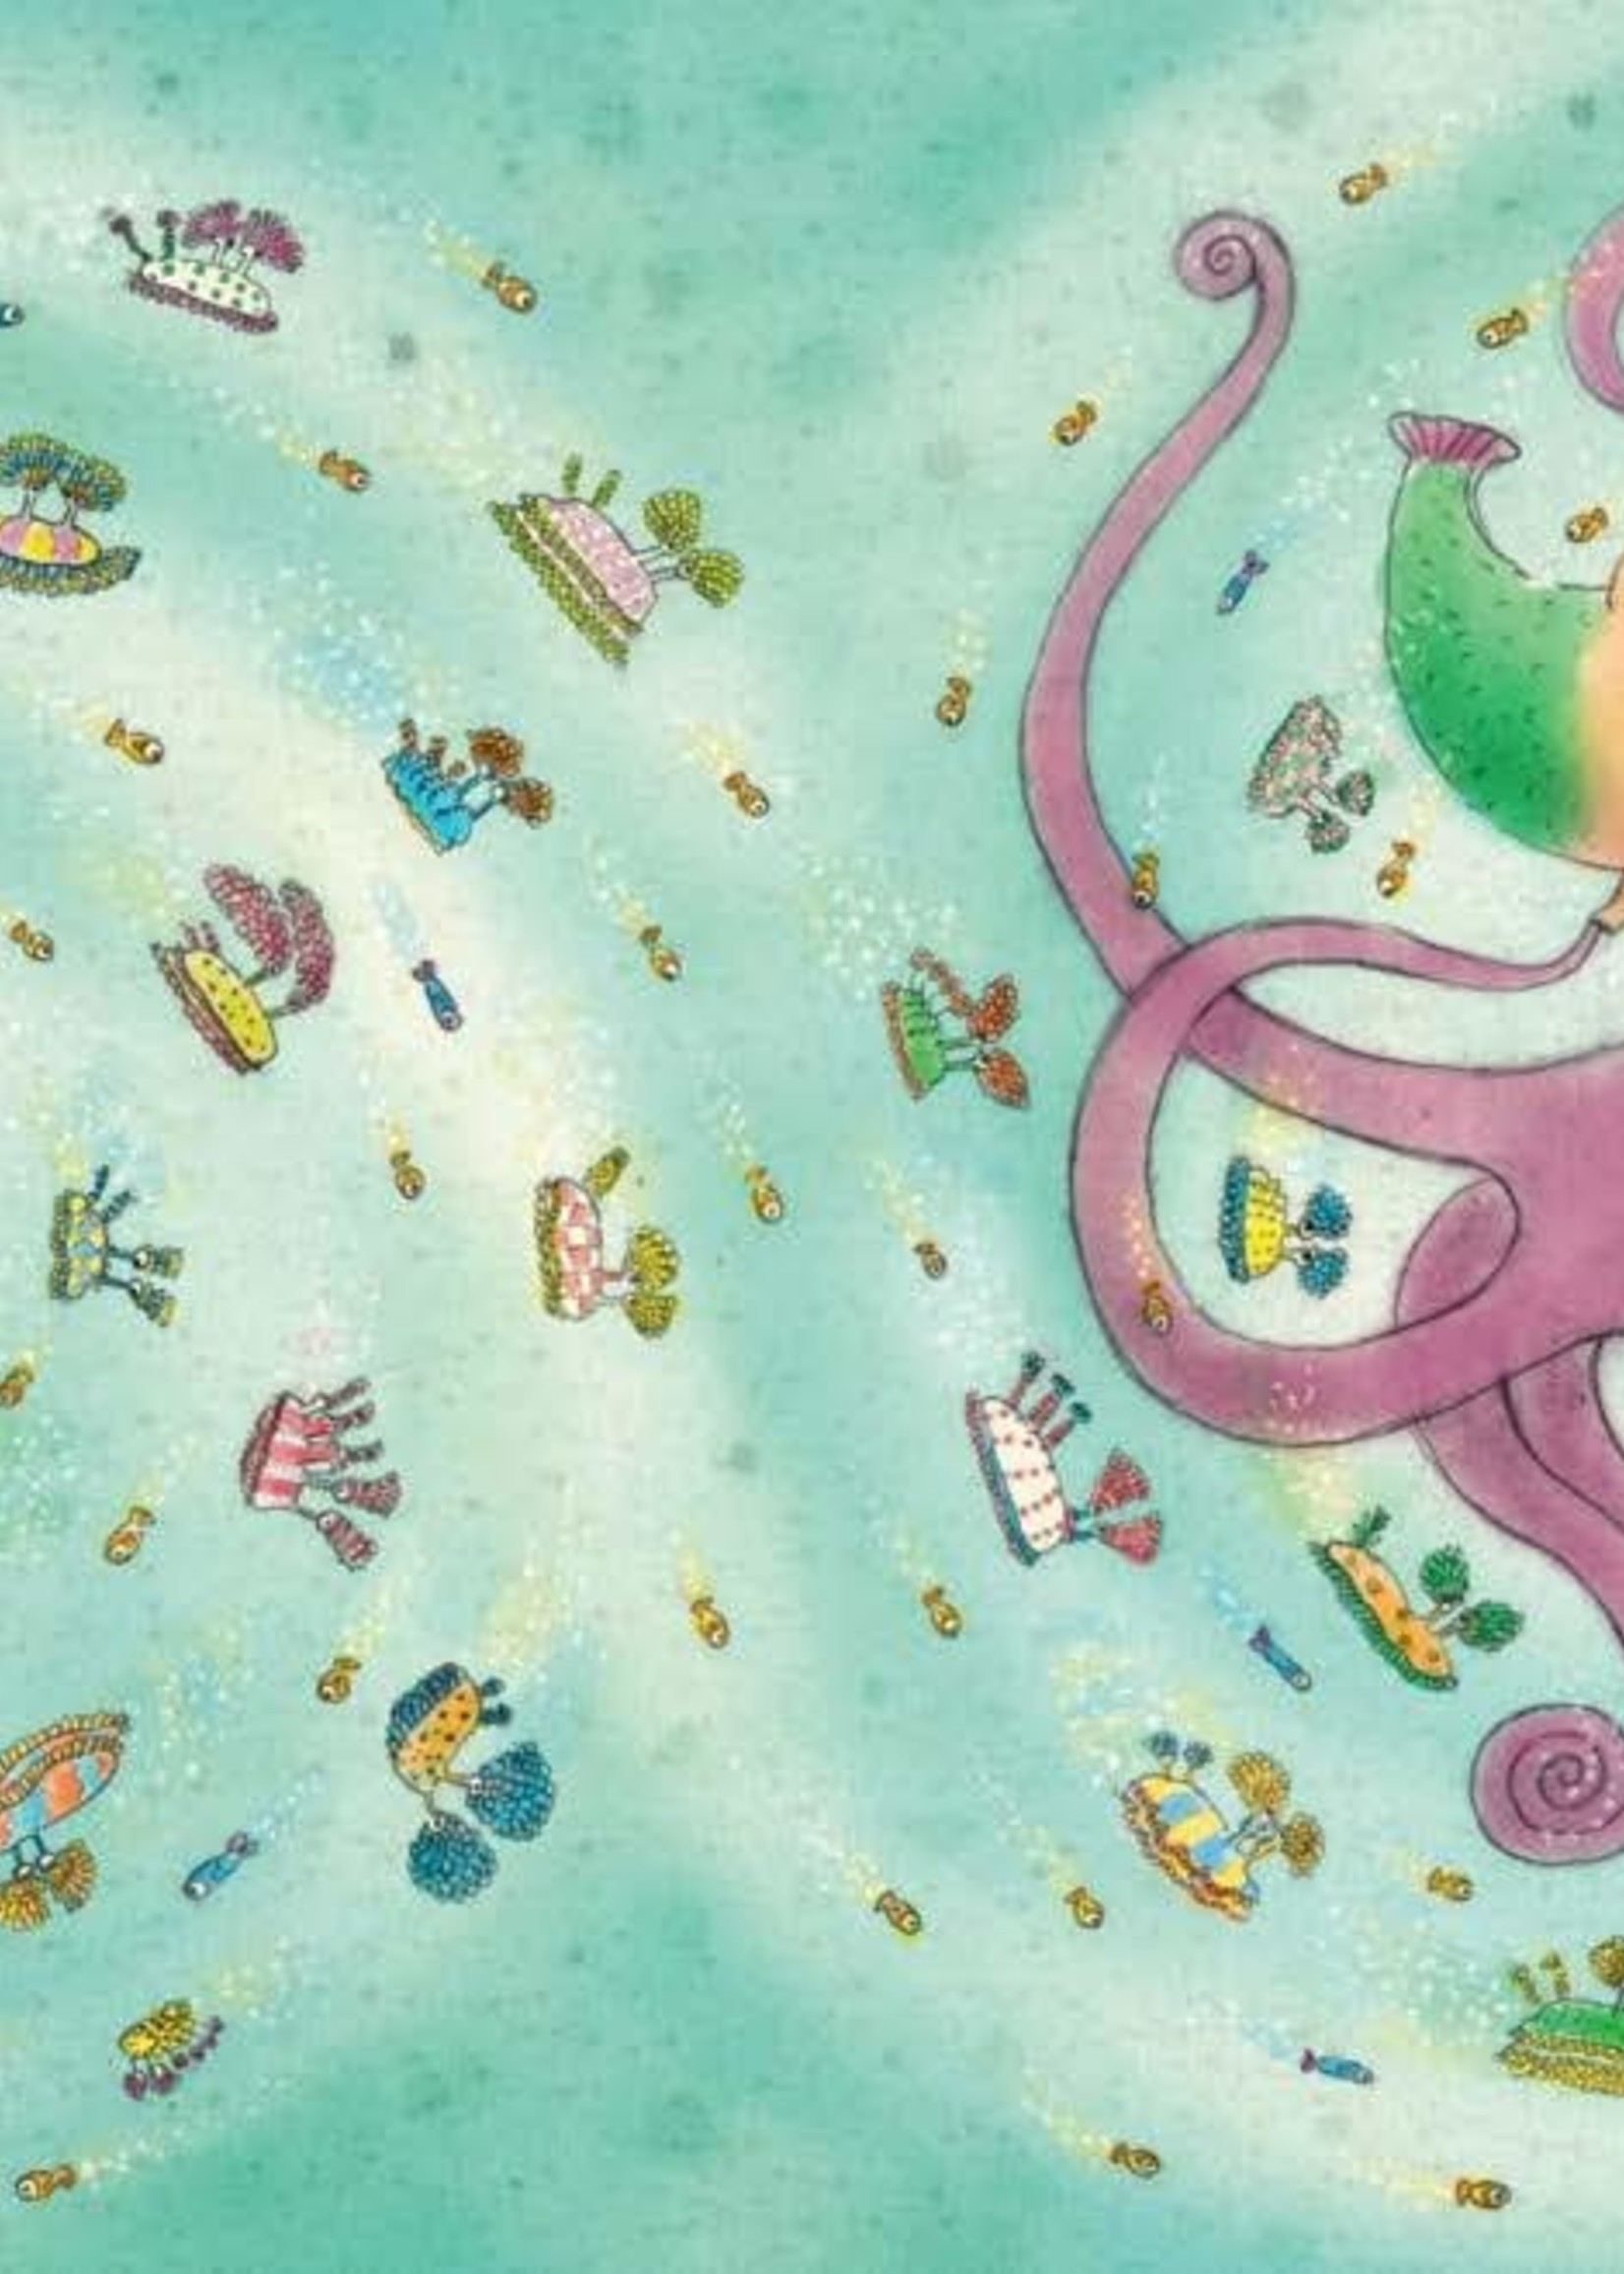 Mabel, A Mermaid Fable - Hardcover